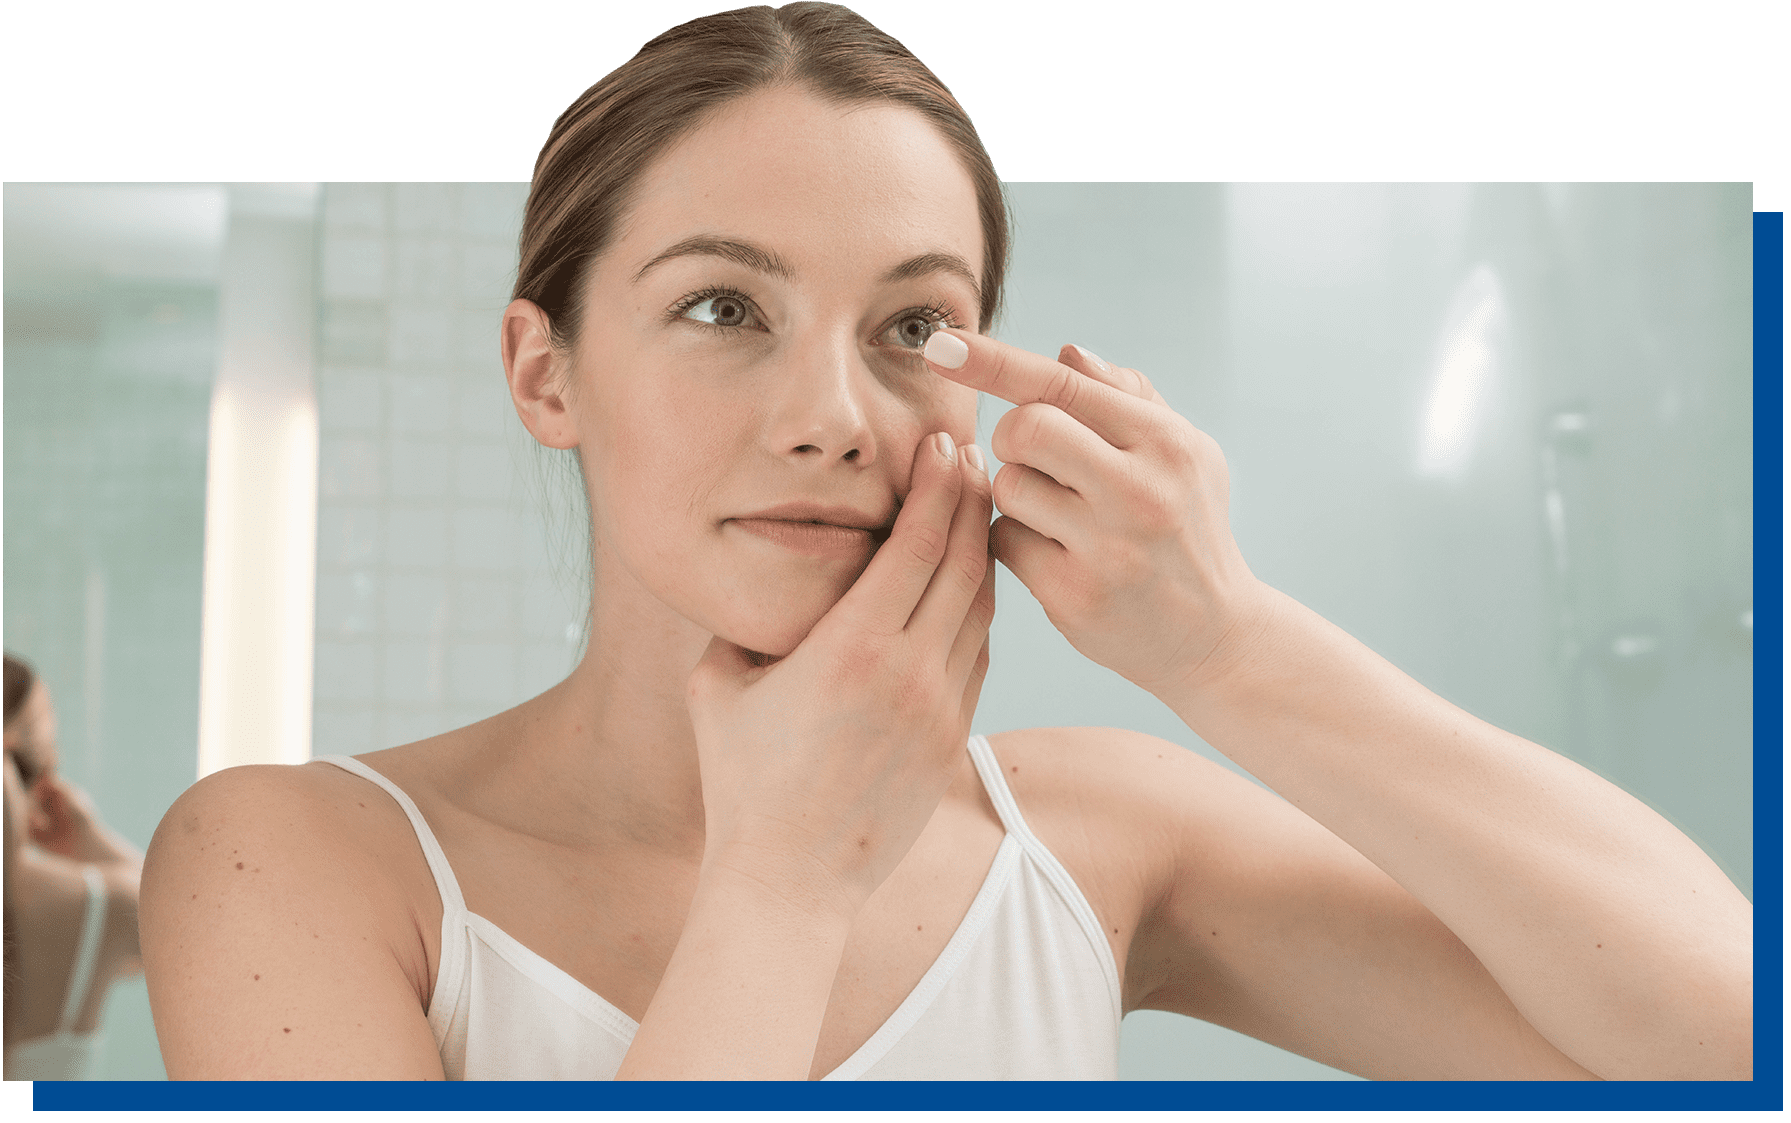 Woman putting contacts in